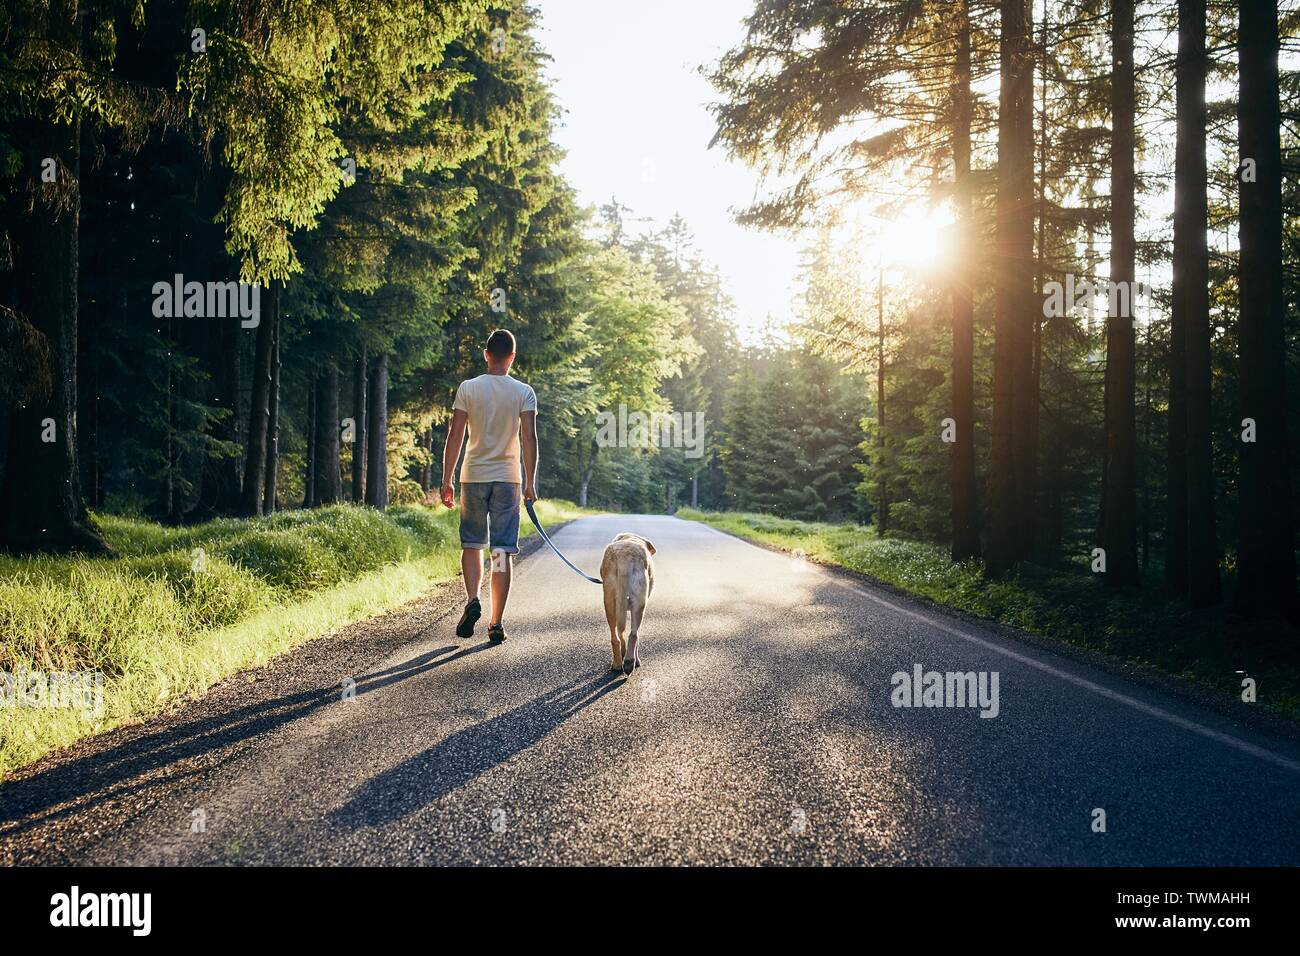 Summertime with dog. Man and his labrador retriever walking on road in forest against beautiful sunset. - Stock Image